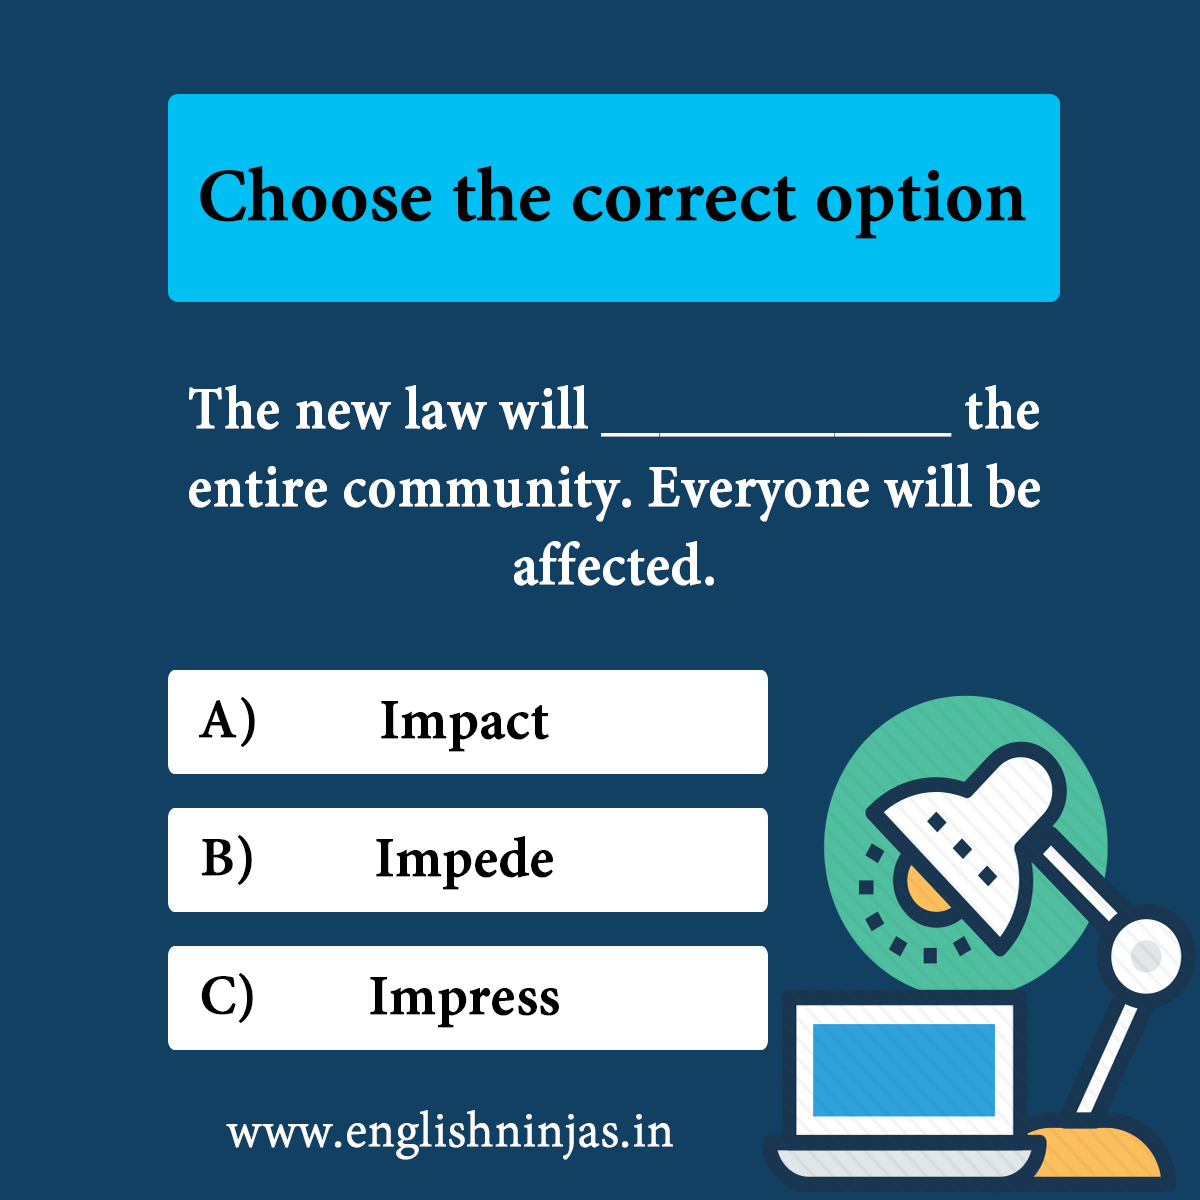 Choose the Correct Option!  For IELTS Online Coaching Contact: +919999179449  visit: http://www.englishninjas.in   #learningenglish #englishlanguage #speakenglish #englishgrammar  #englishvocabulary #learning #language #englishtips #englishlearning #englishclass #englishninjas #ieltspic.twitter.com/C1QURHkicd